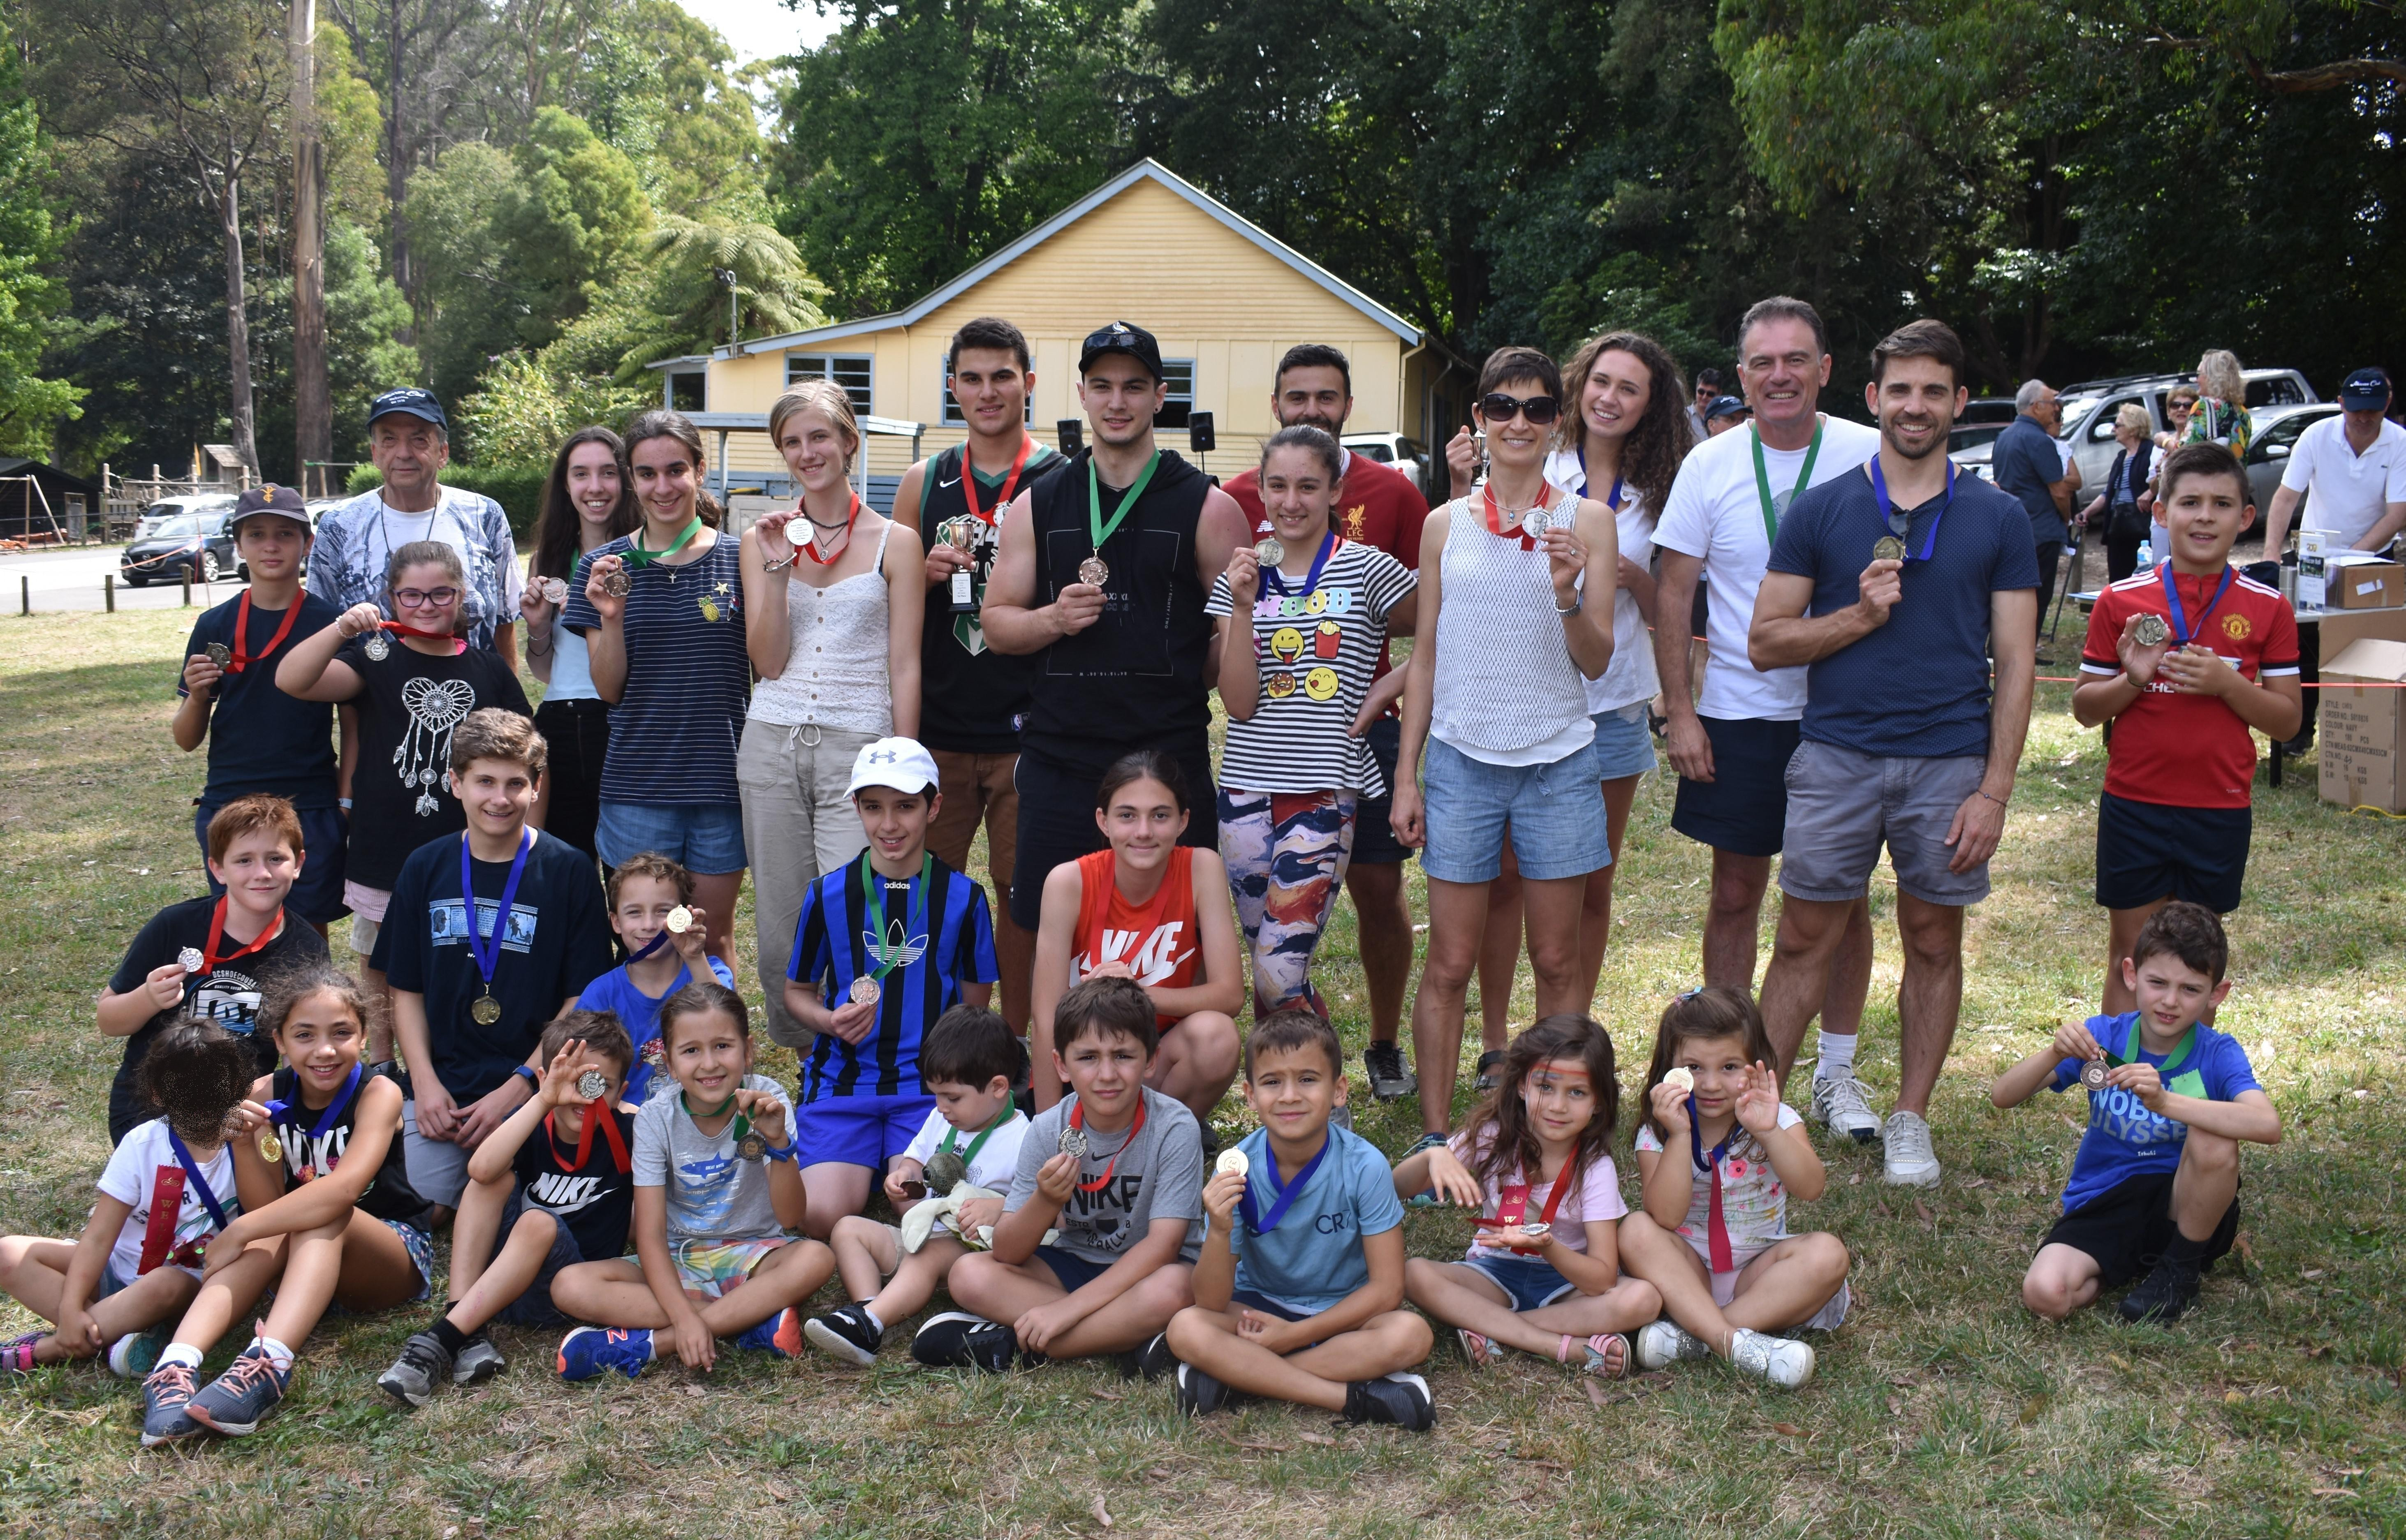 2019 Annual Picnic a resounding success